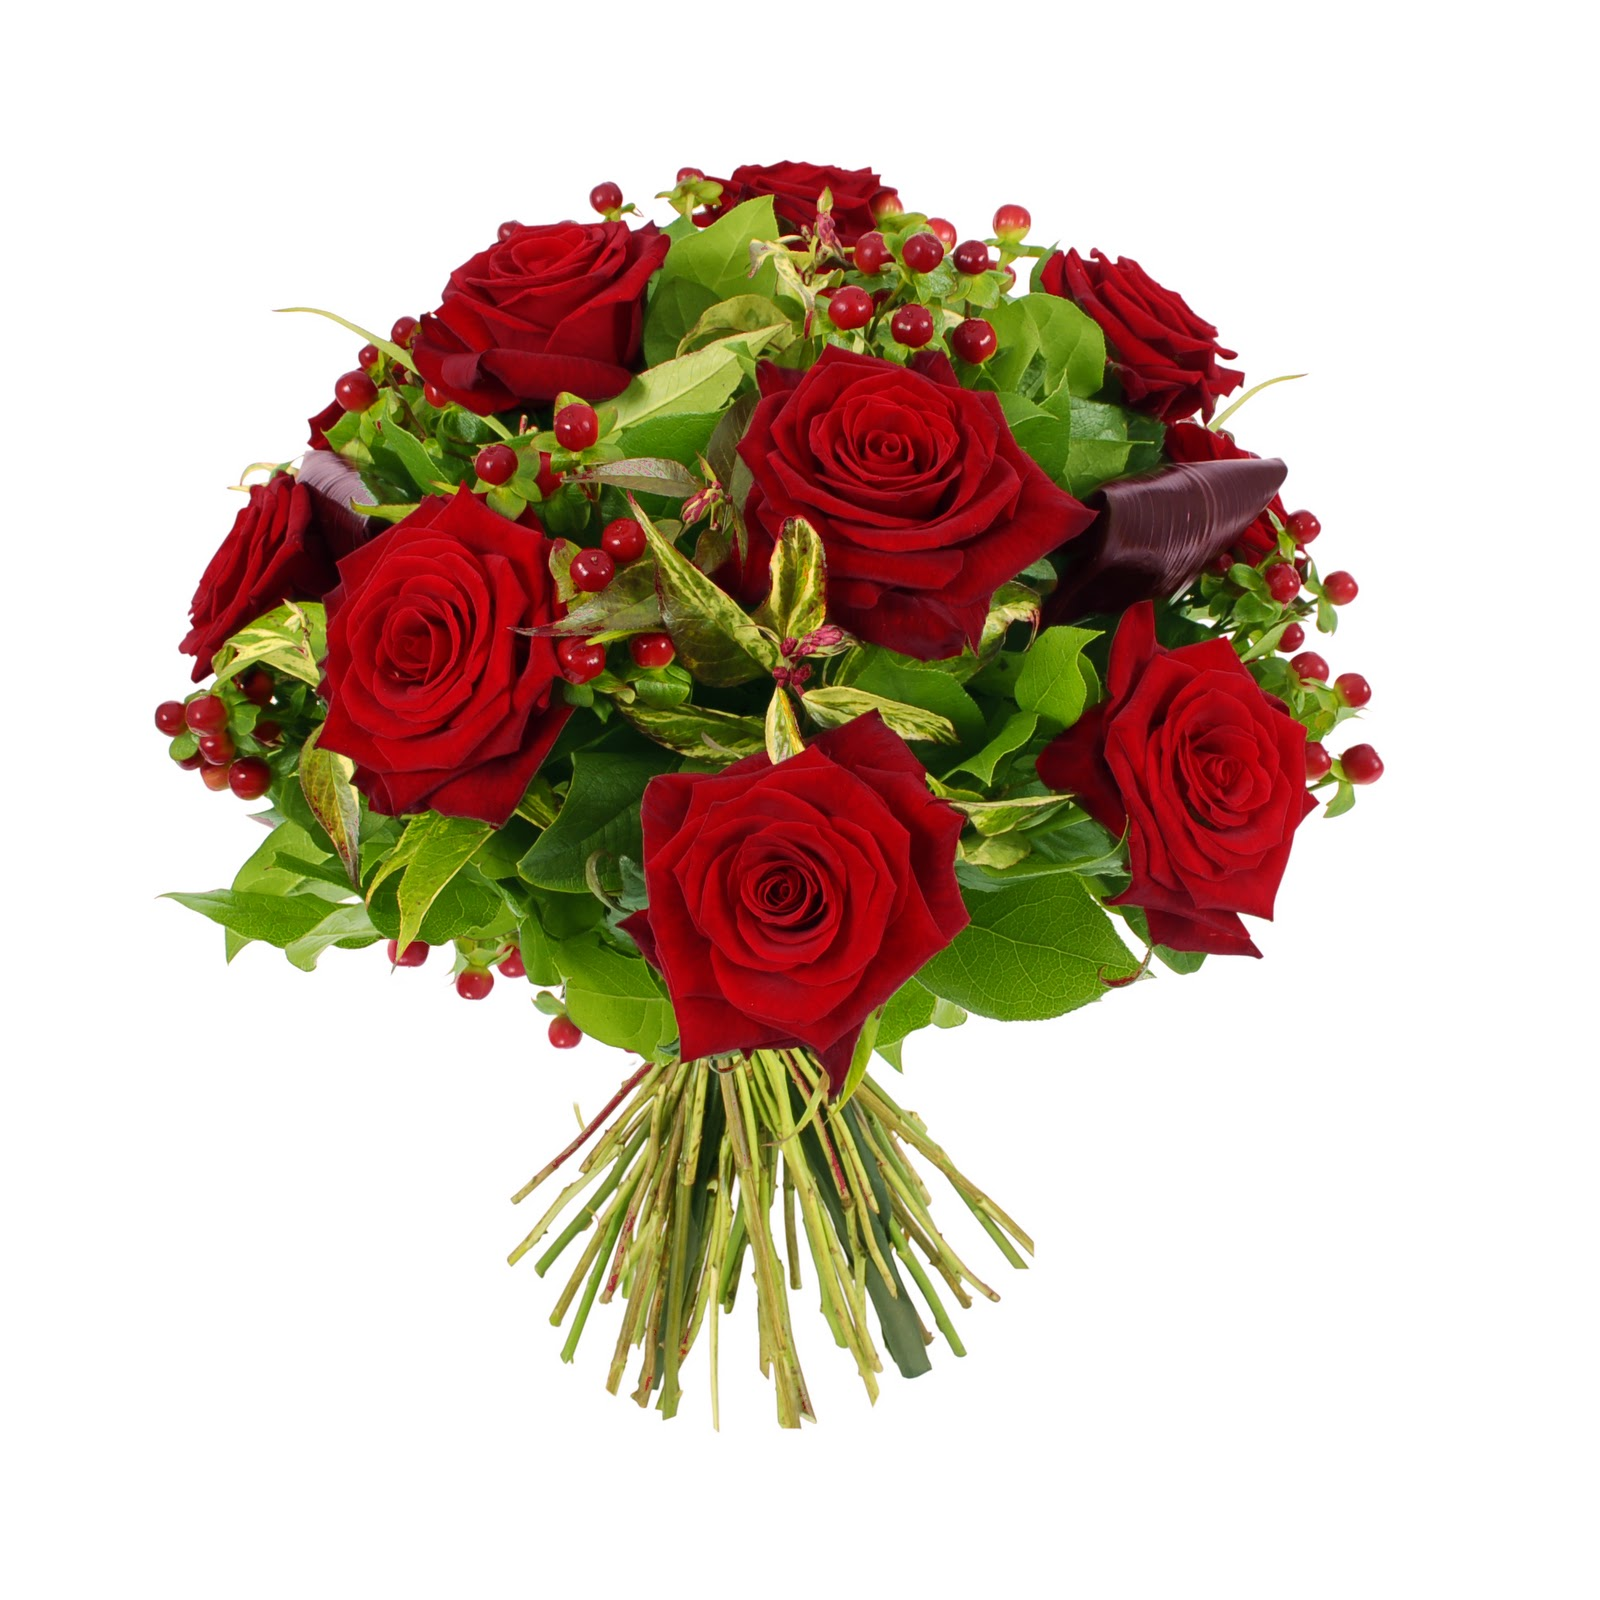 Free online pictures of flowers vector library download Given To Distracting Others: CANCER RESEARCH UK'S ONLINE FLOWER ... vector library download